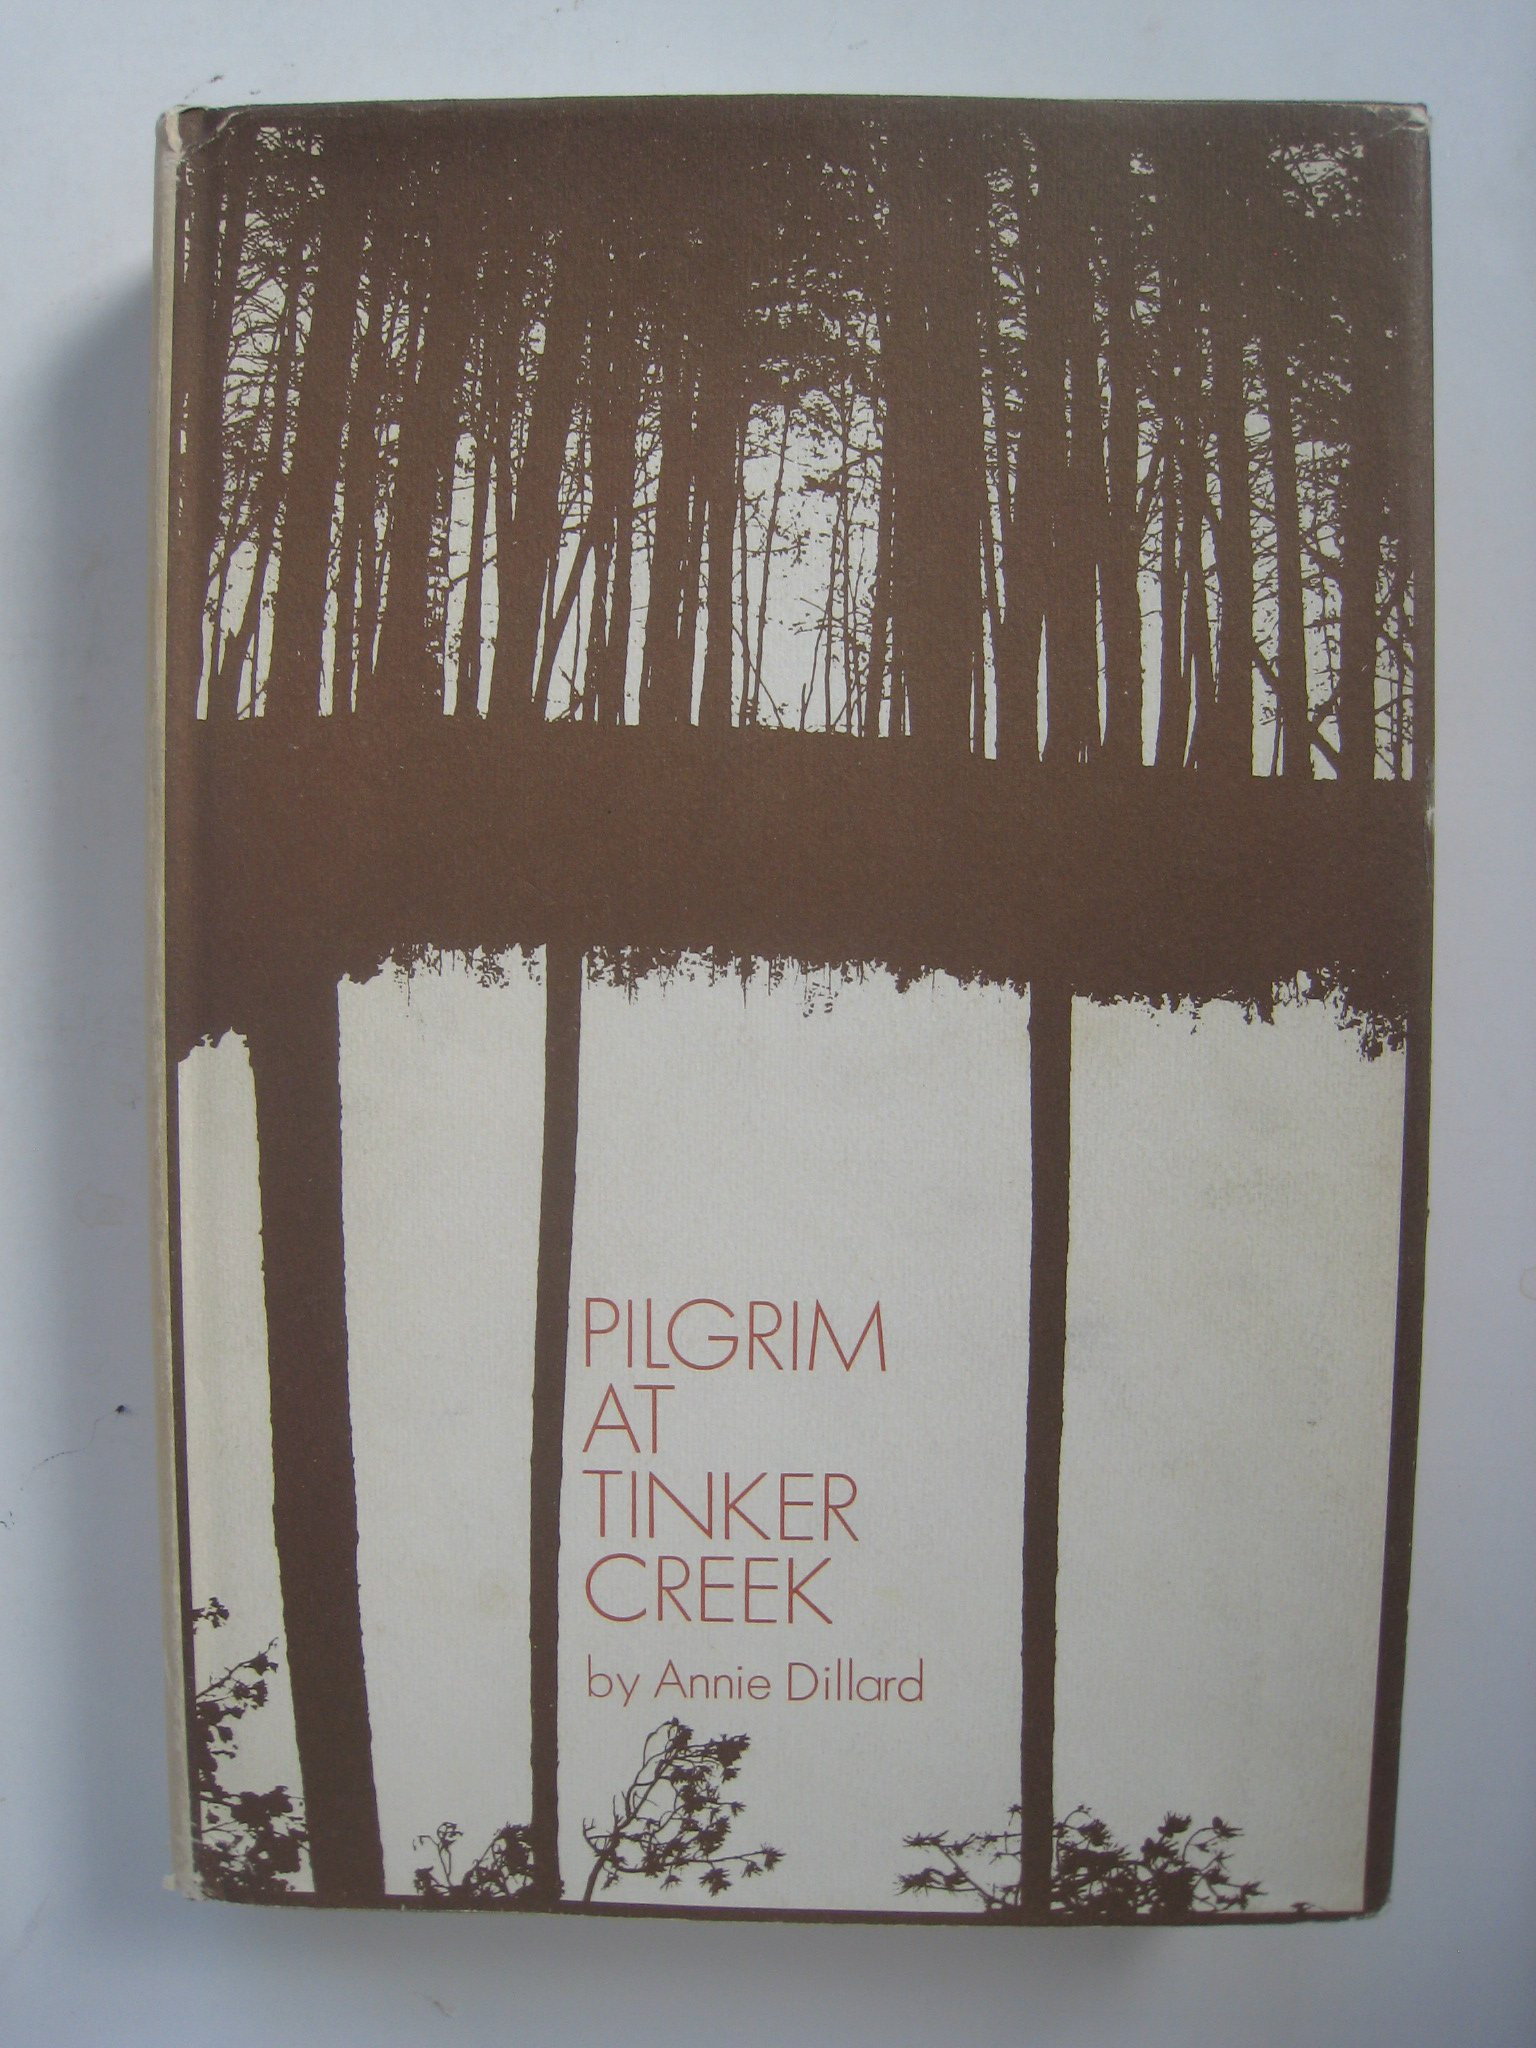 PILGRIM AT TINKER CREEK By ANNIE DILLARD 1974 first edition, ANNIE DILLARD